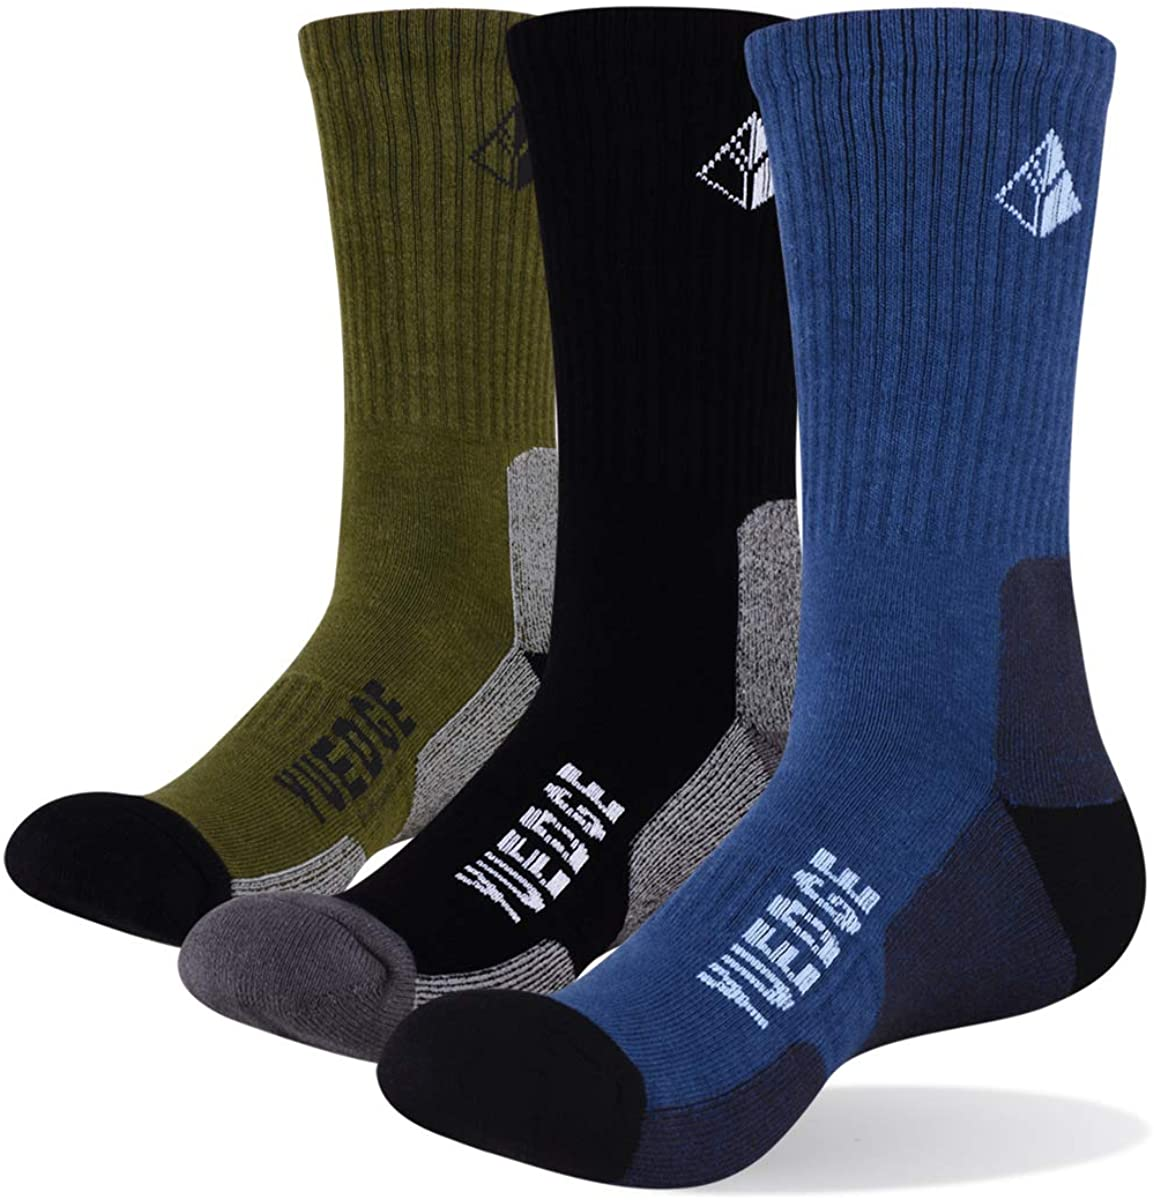 YUEDGE Men's Athletic Sports Socks Cotton Moisture Wicking Cushion Crew Socks(3 Pairs Pack of X-Large)